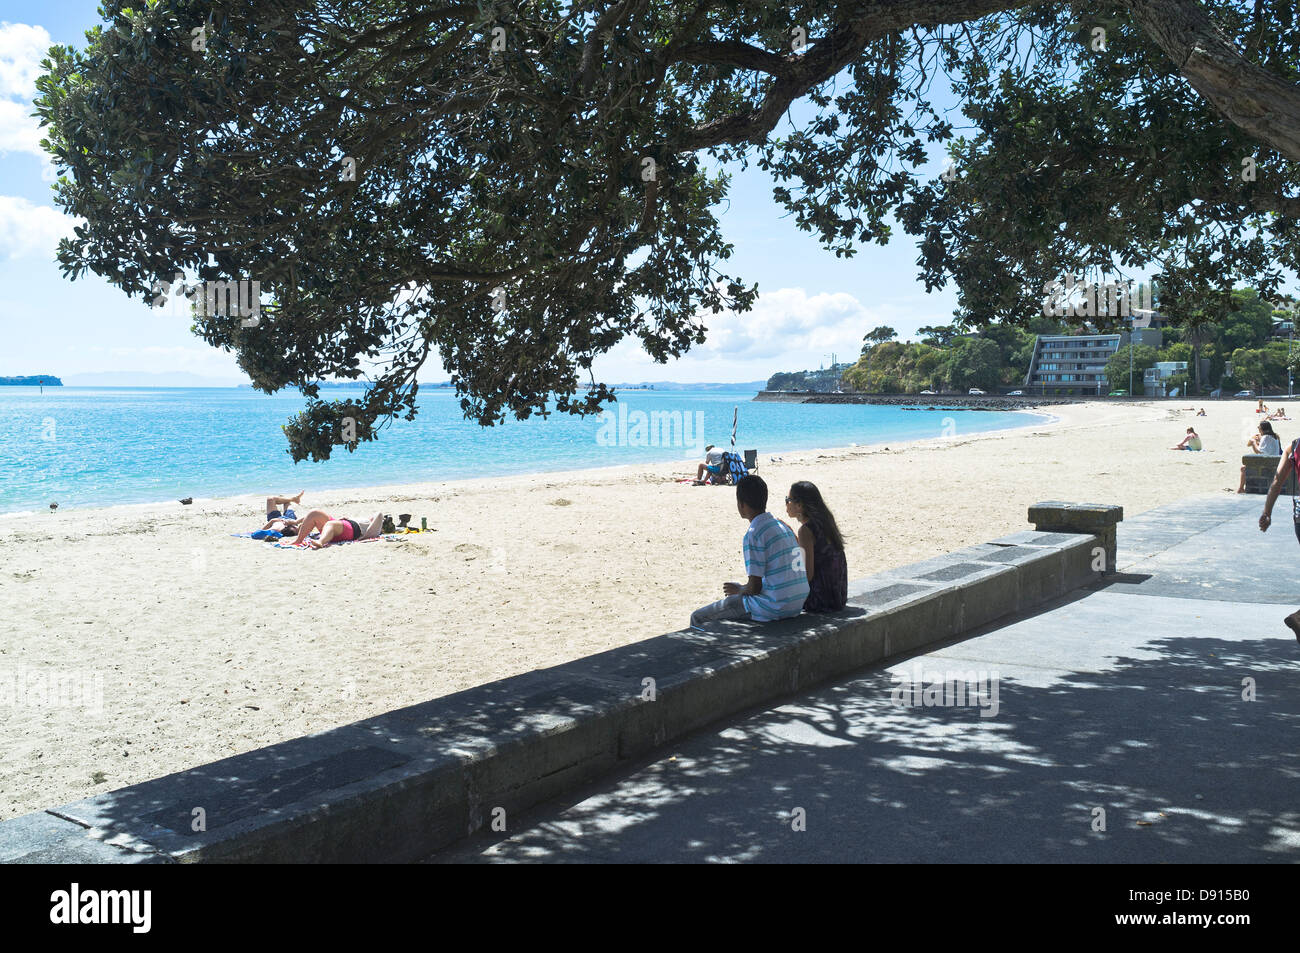 Dh mission bay auckland new zealand couple sitting on - Mission bay swimming pool auckland ...